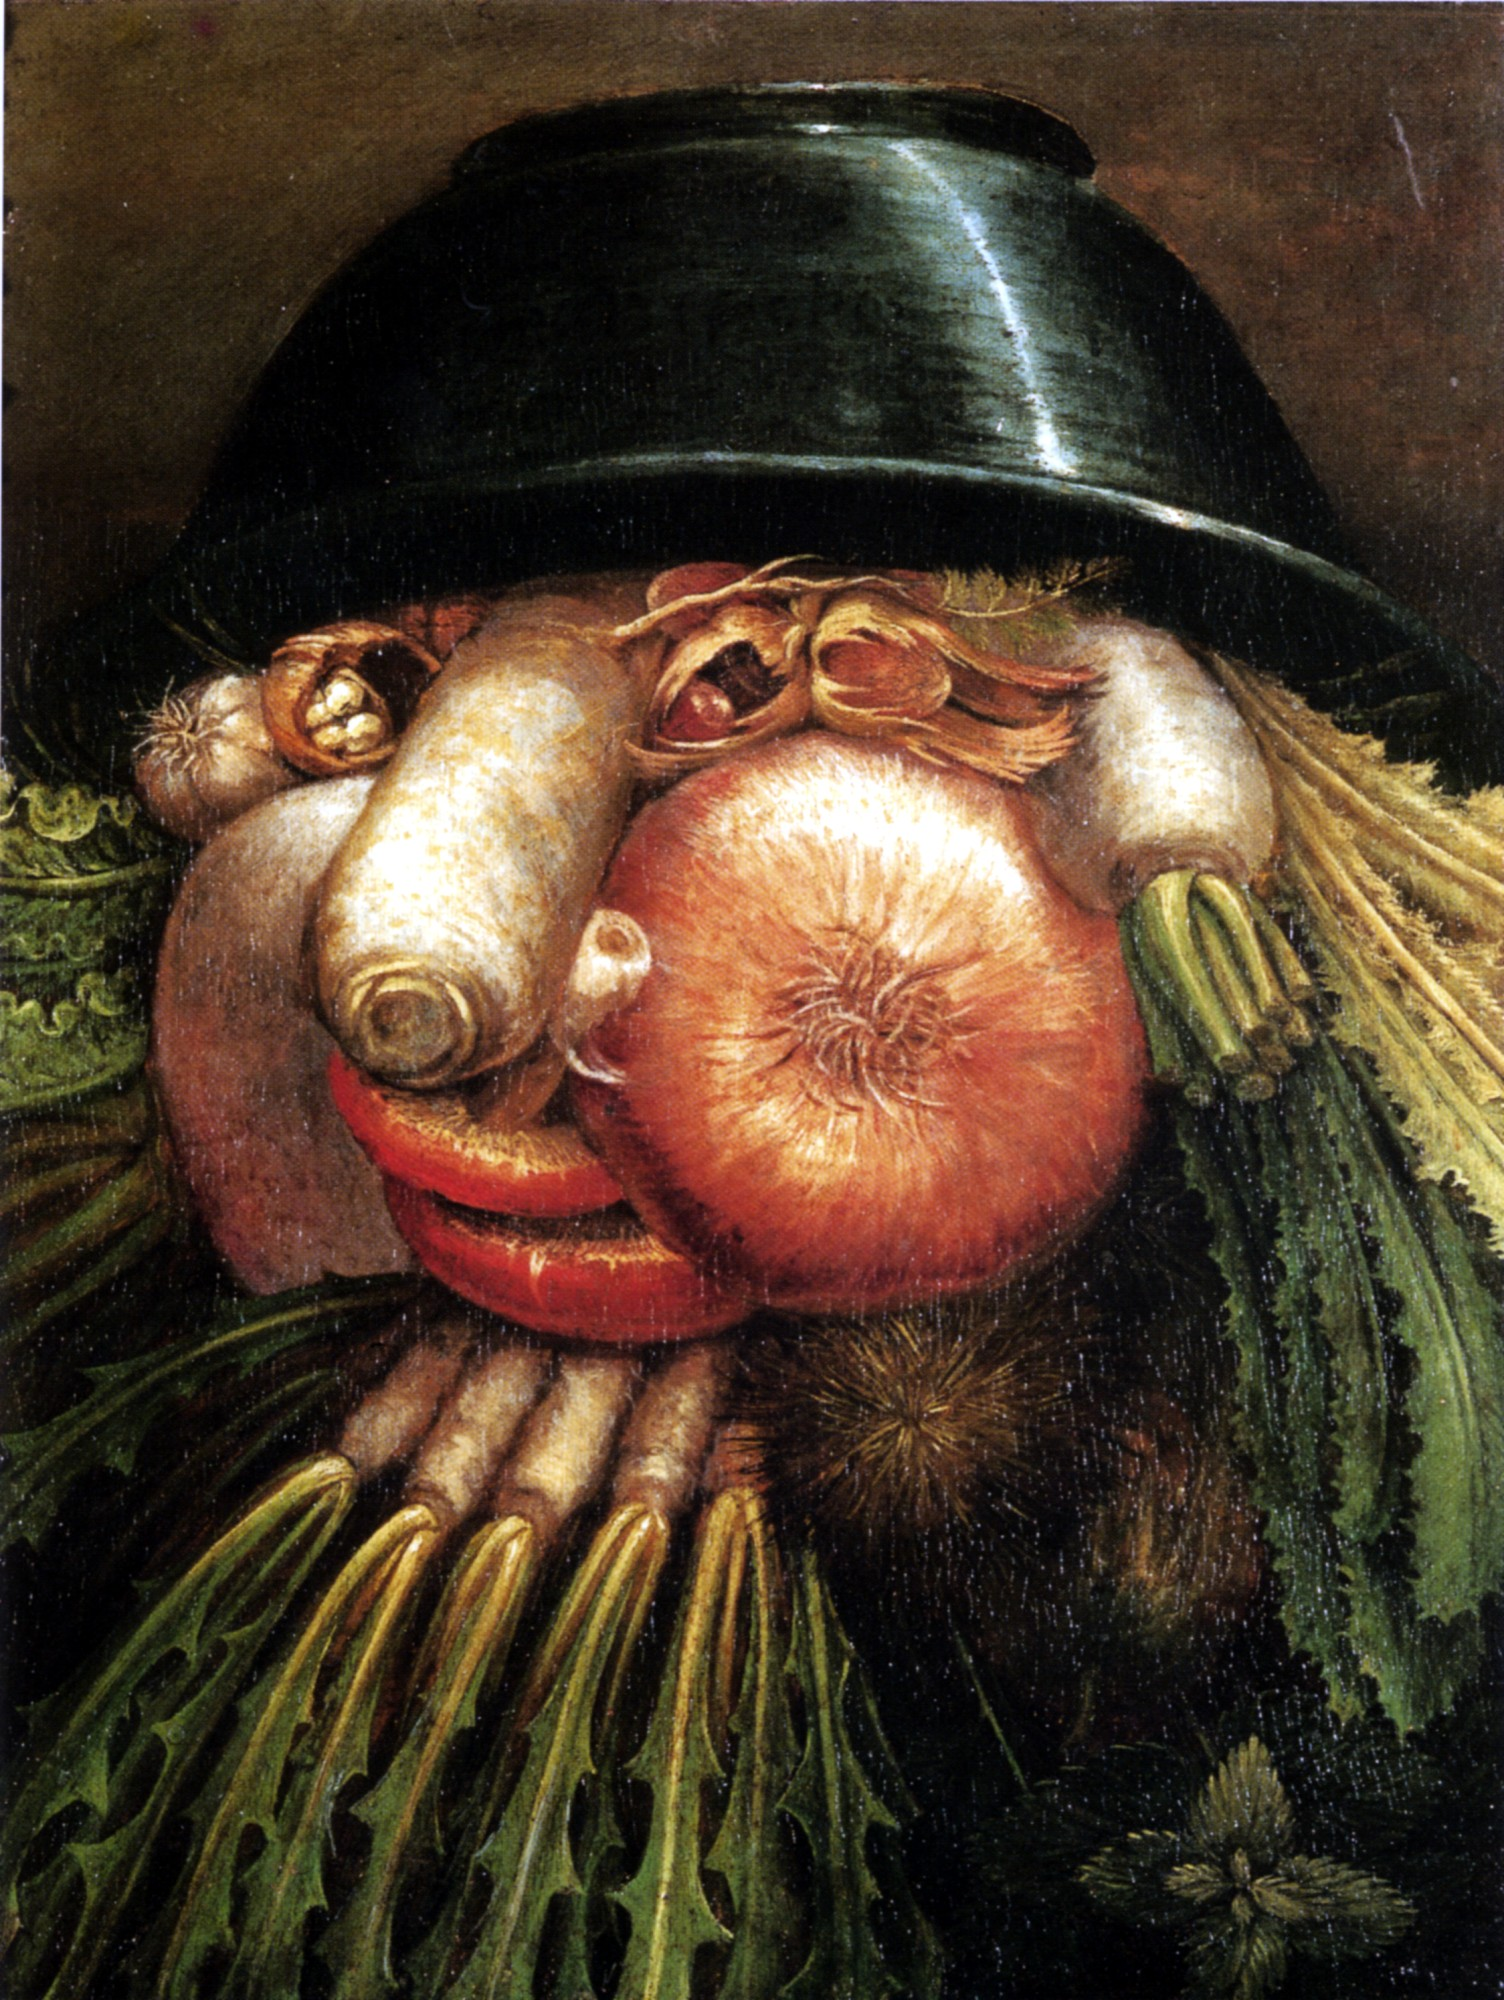 guiseppe-arcimboldo-painter-vegetable-head